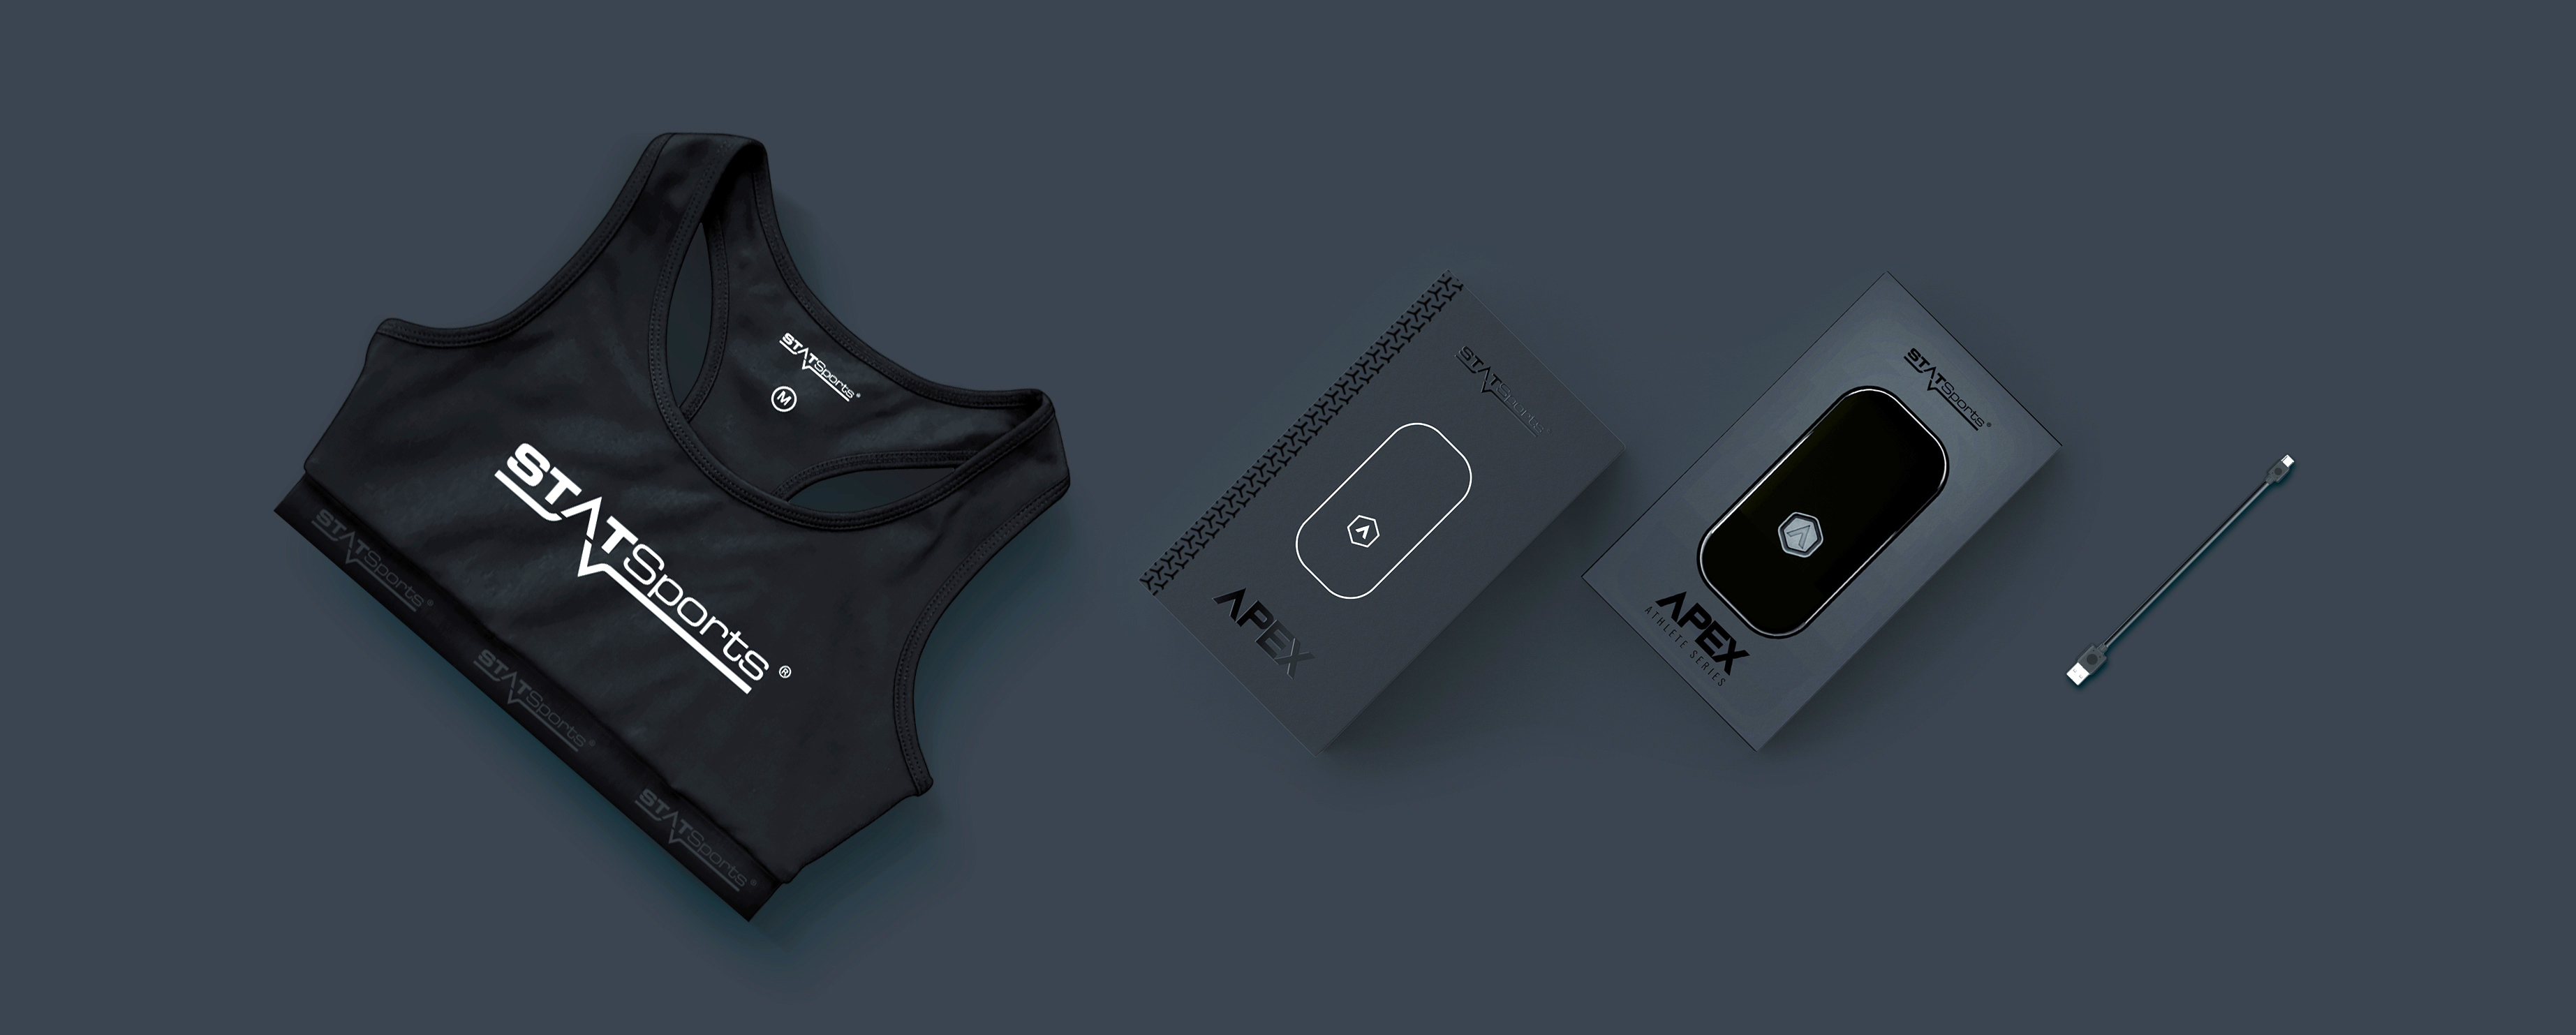 Athlete Series: Vest, boxed Apex pod and USB cable